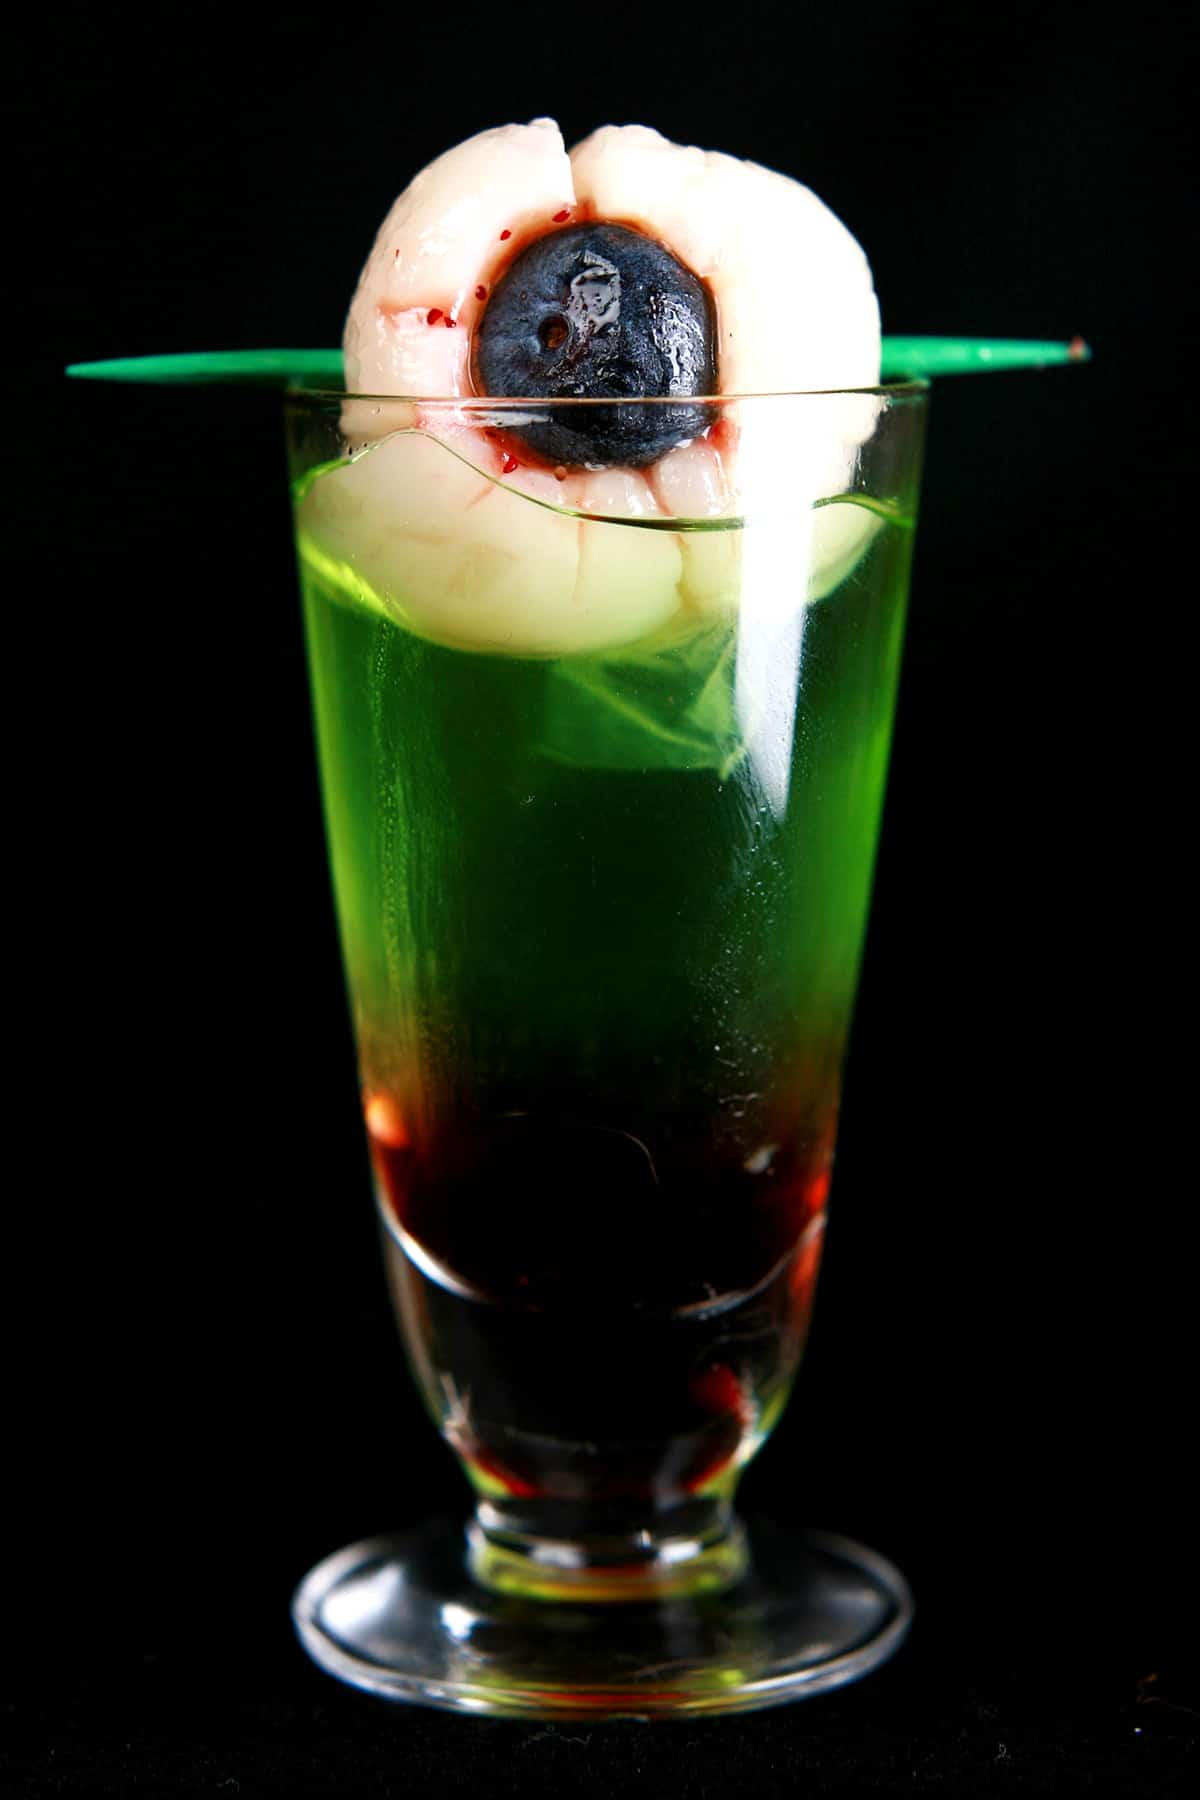 The Bloody eyeball Halloween shot. A bright green Halloween shooter, with red on the bottom. A lychee - filled with red jam and a blueberry - garnishes the top of the shot.